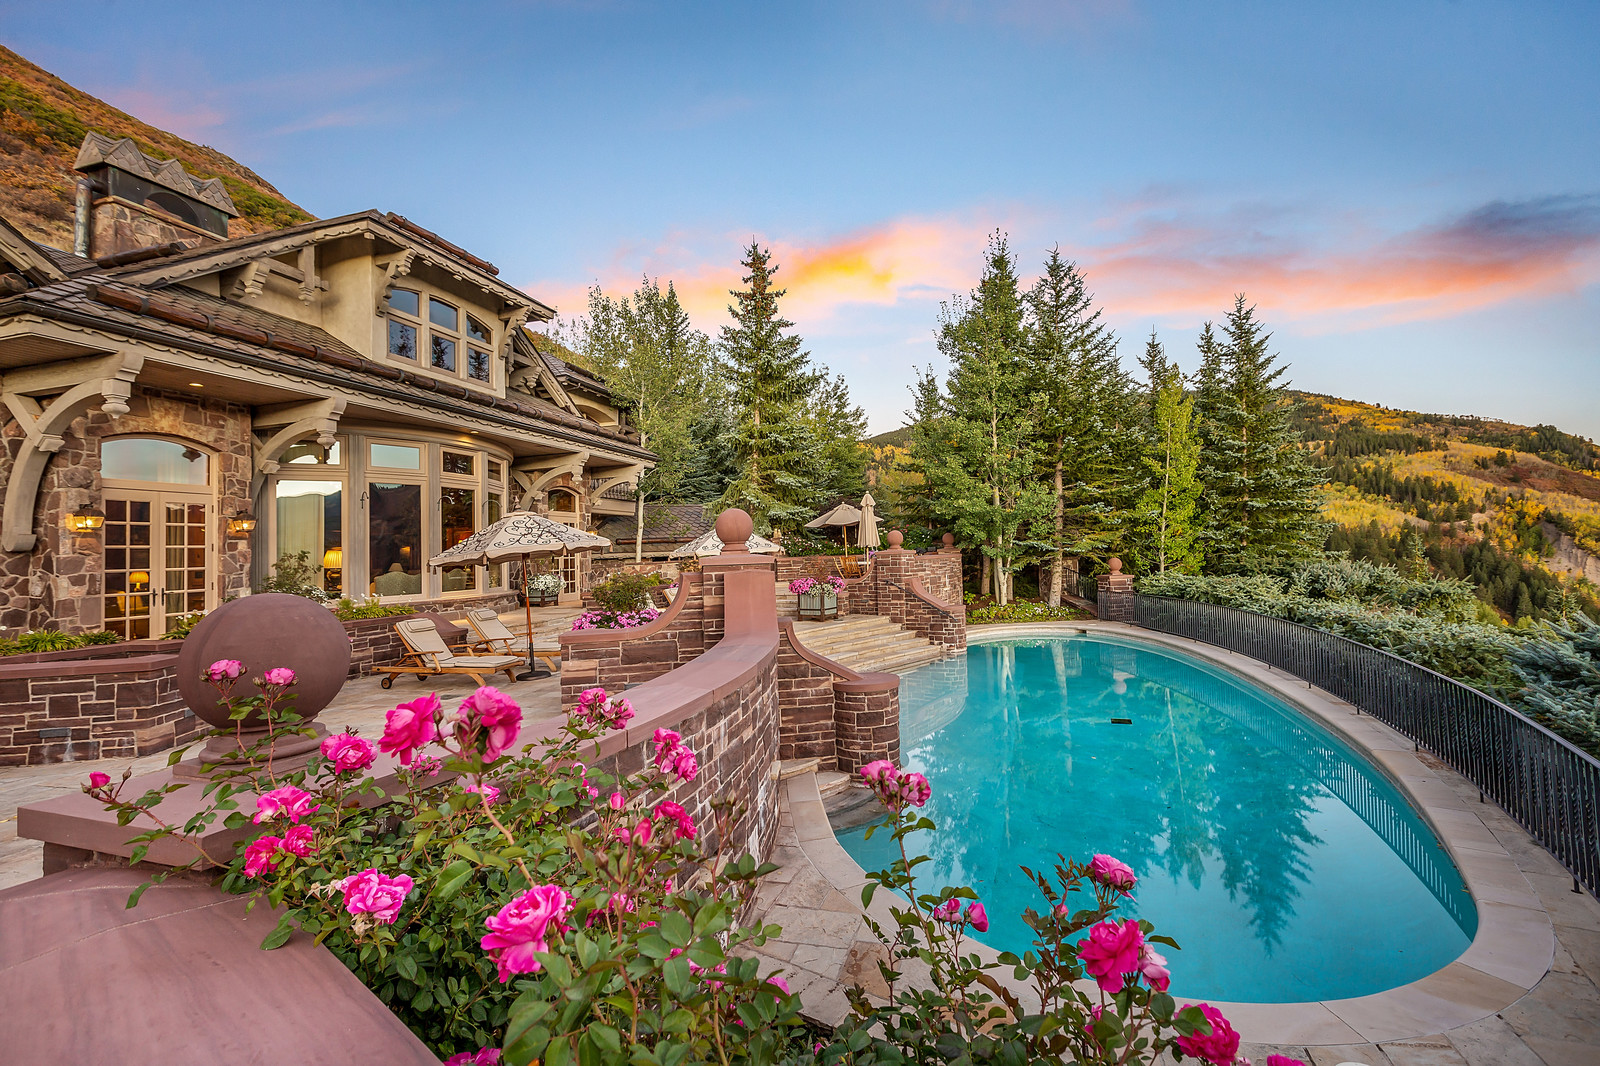 Luxury mountain home with expansive pool and patio